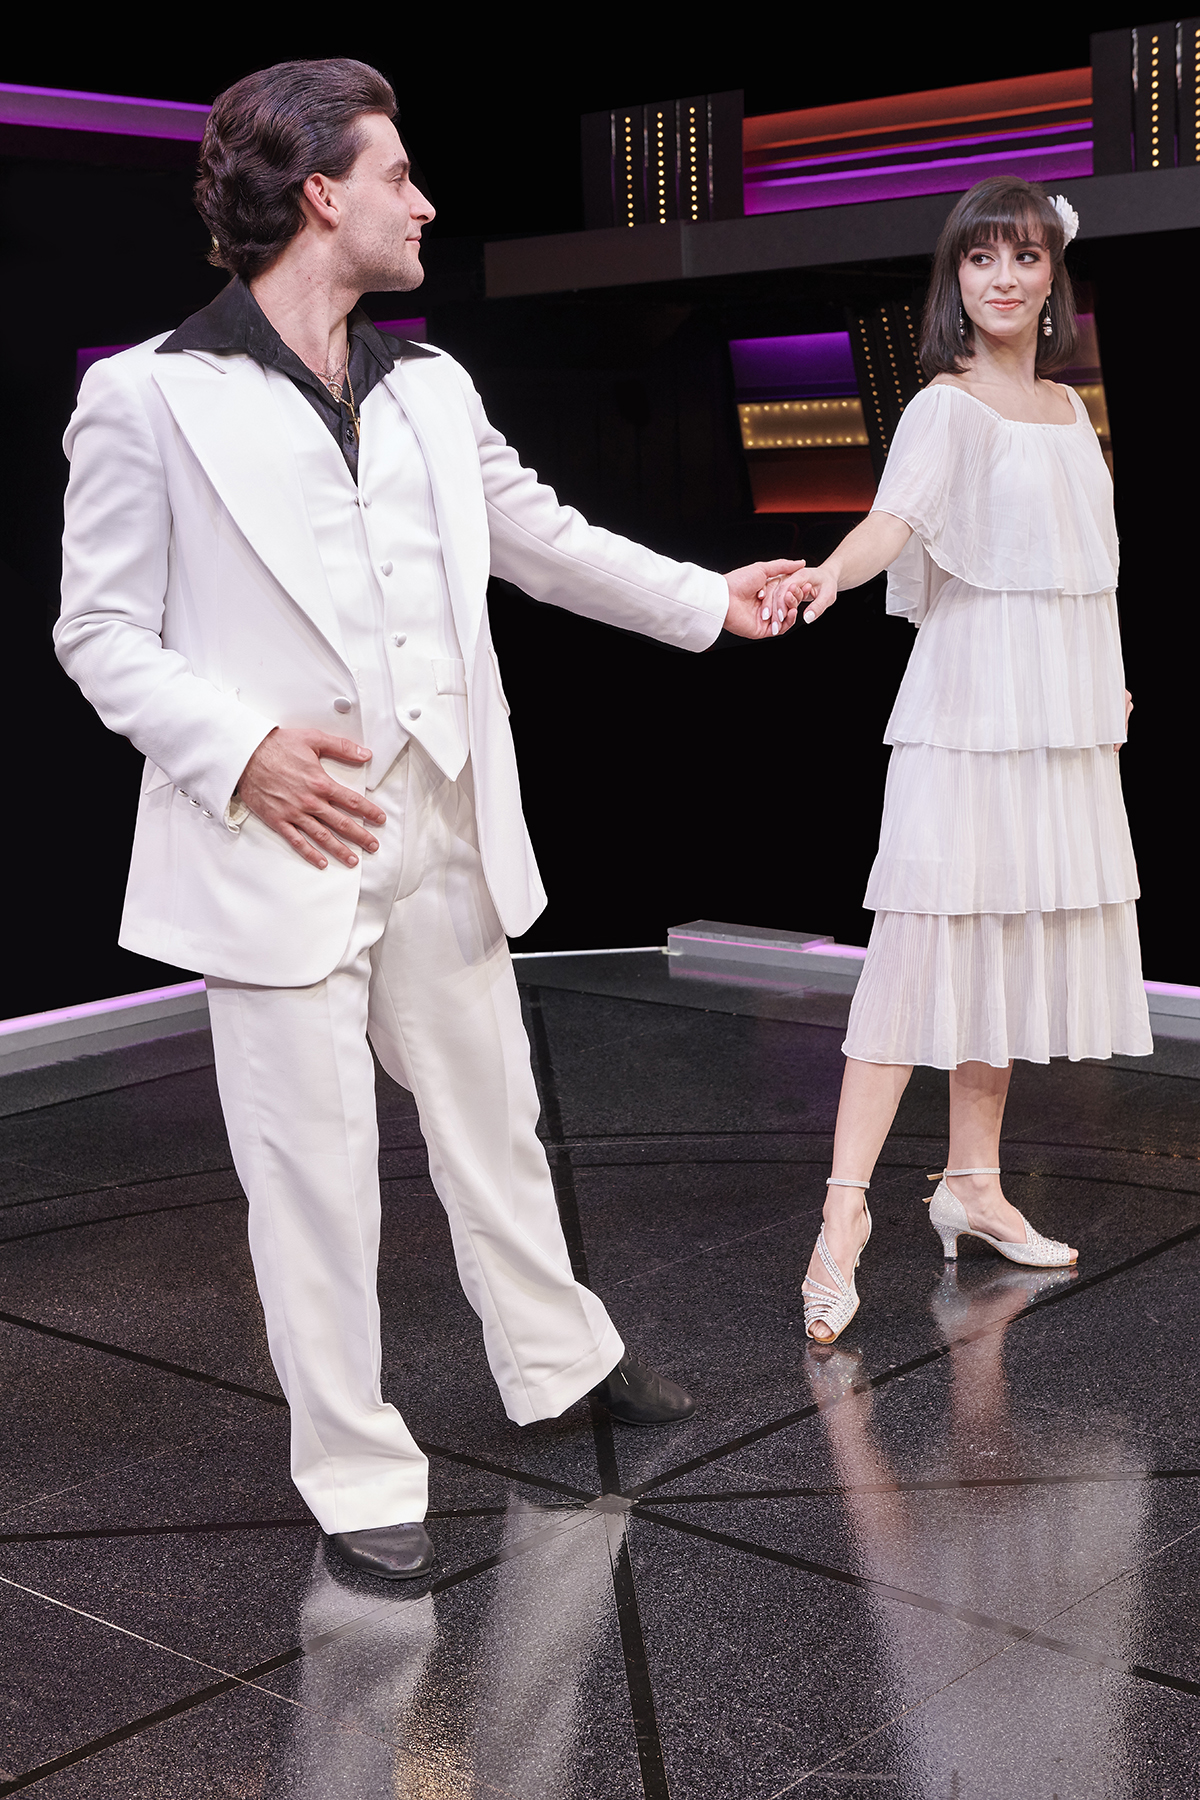 Tony and Stephanie in Saturday Night Fever